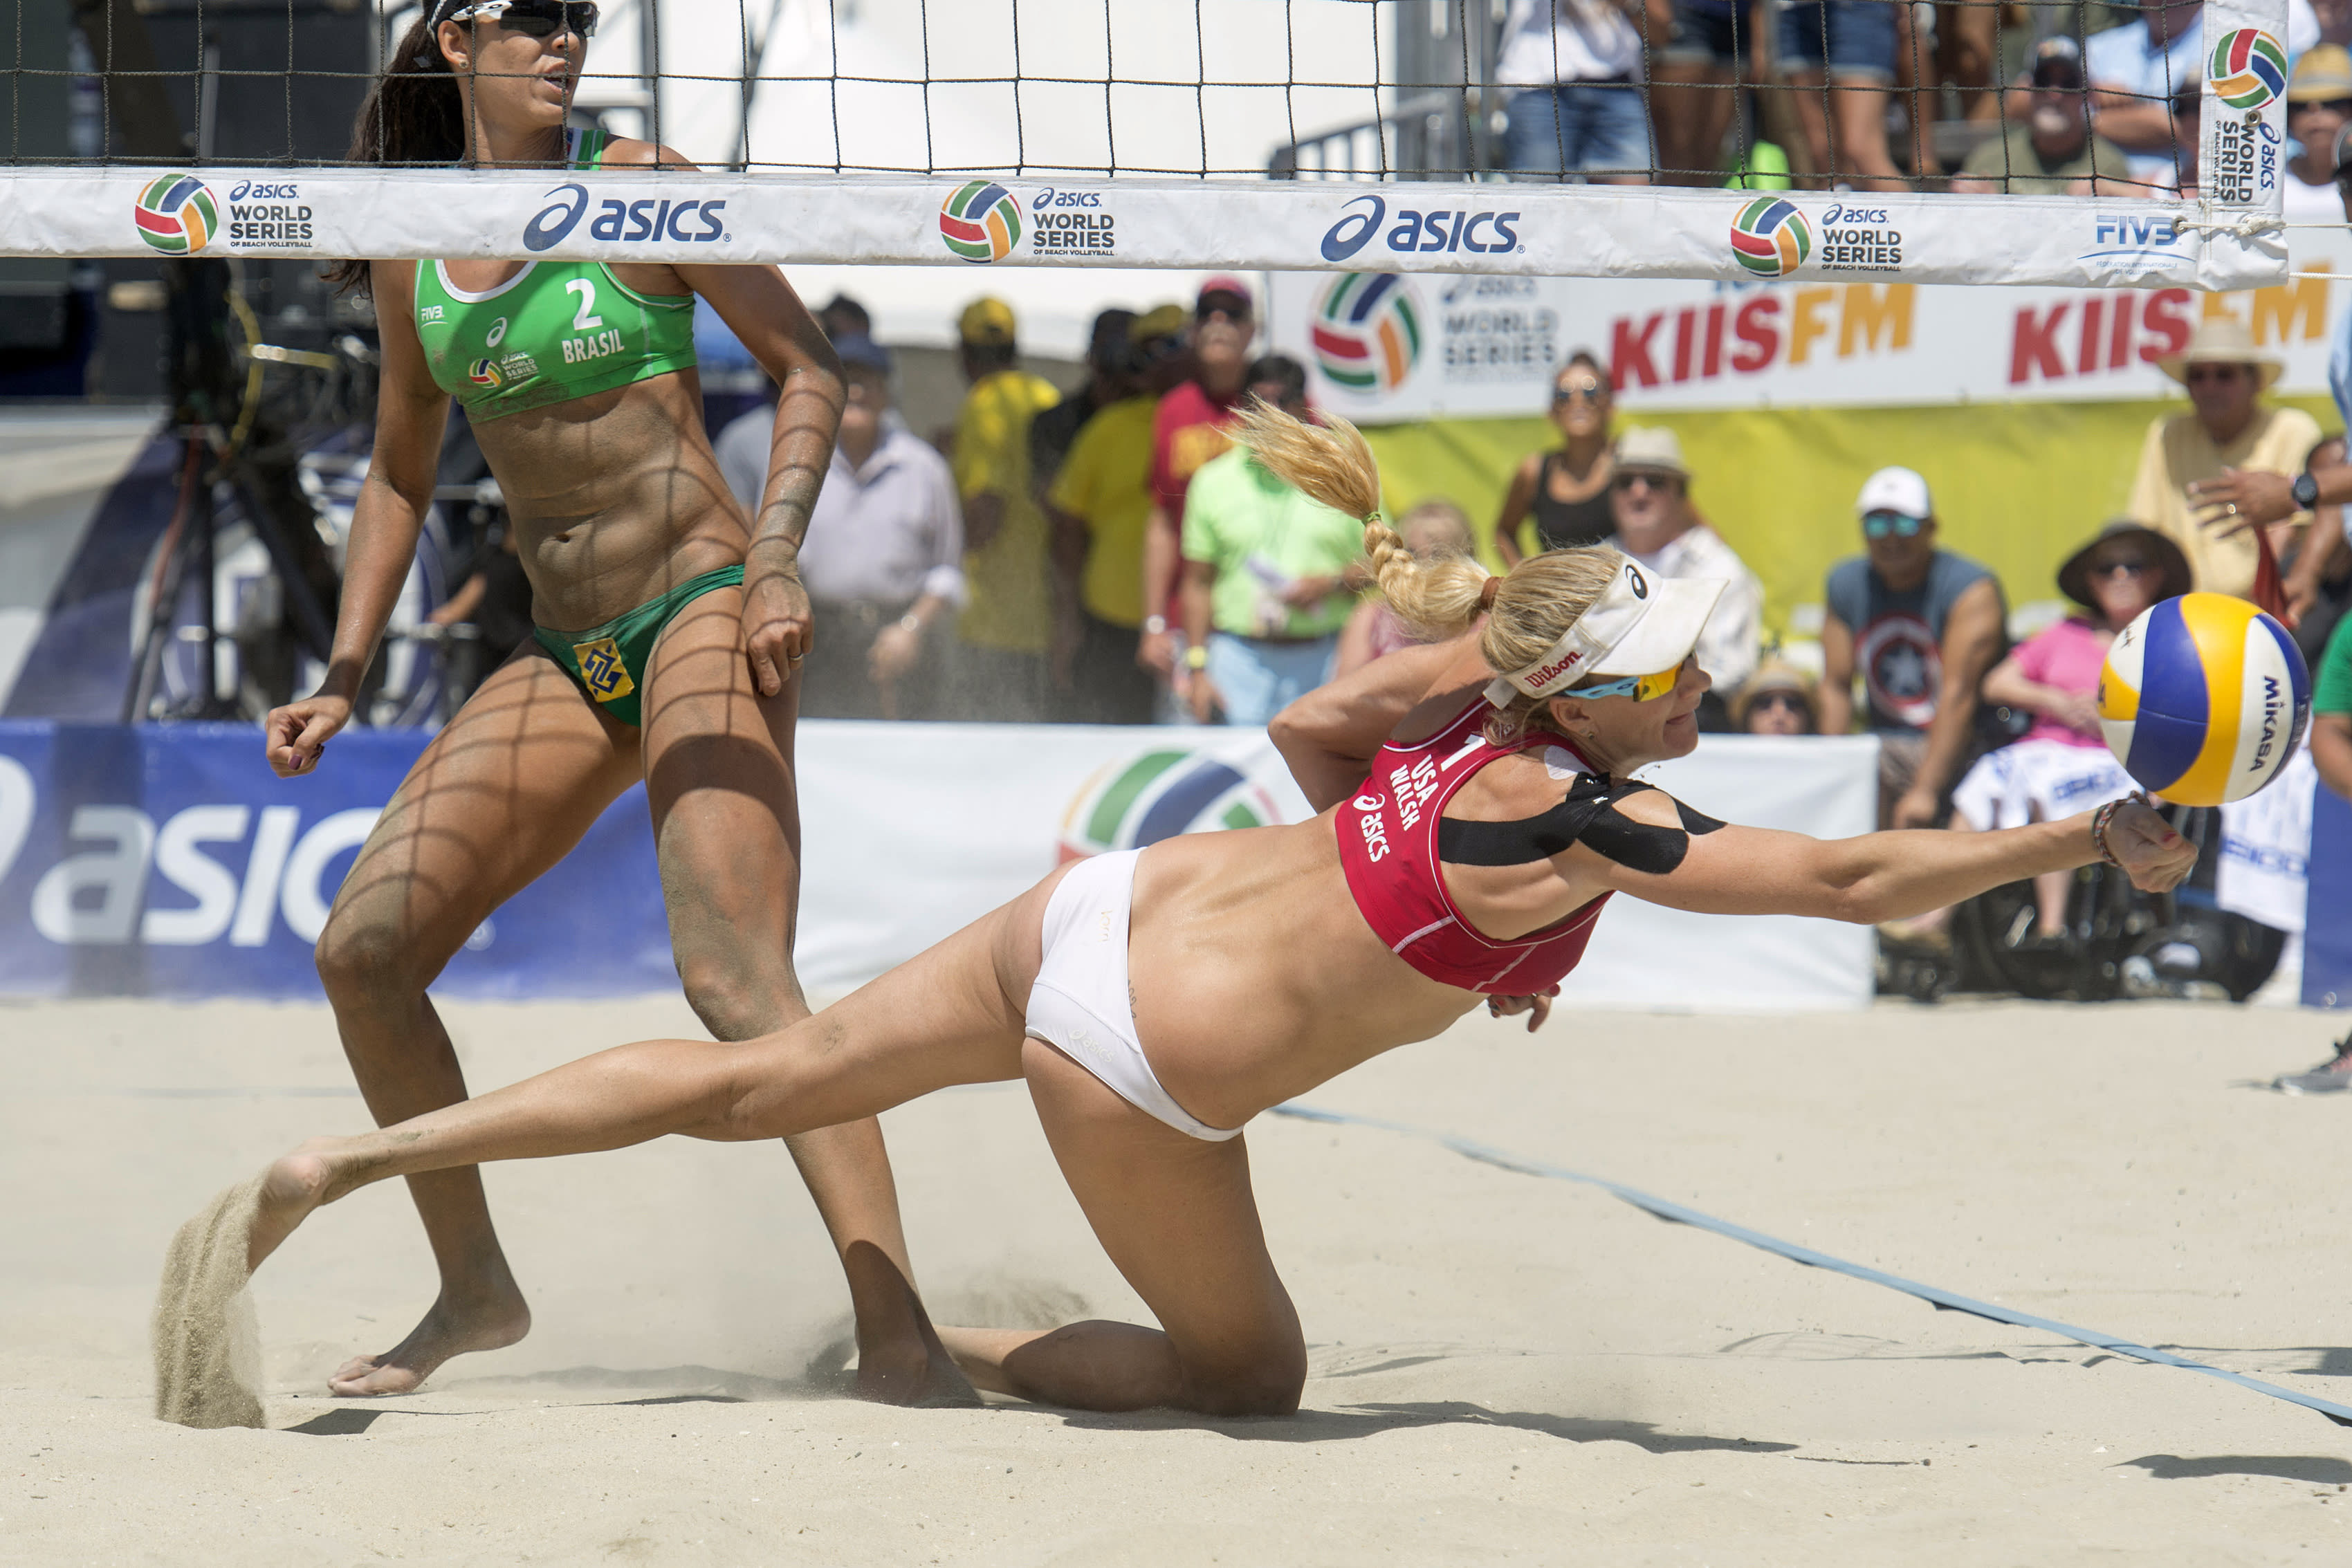 FILE - In this Aug. 23, 2015, file photo, Kerri Walsh Jennings can't get to the ball in the gold medal match at the FIVB World Series of Beach Volleyball at Alamitos Beach in Long Beach, Calif. Organizers of the AVP beach volleyball tour gathered at their Orange County war room to try to salvage as much as possible of their season as the cancellations mounted in the sports world. Ideas tossed out included everything from a fan-free setup on a local beach to playing in front of a green screen in a TV studio. But with the suspension of the NBA season, it became obvious that scrapping any events before June was the only choice. (Michael Goulding/The Orange County Register via AP, File)